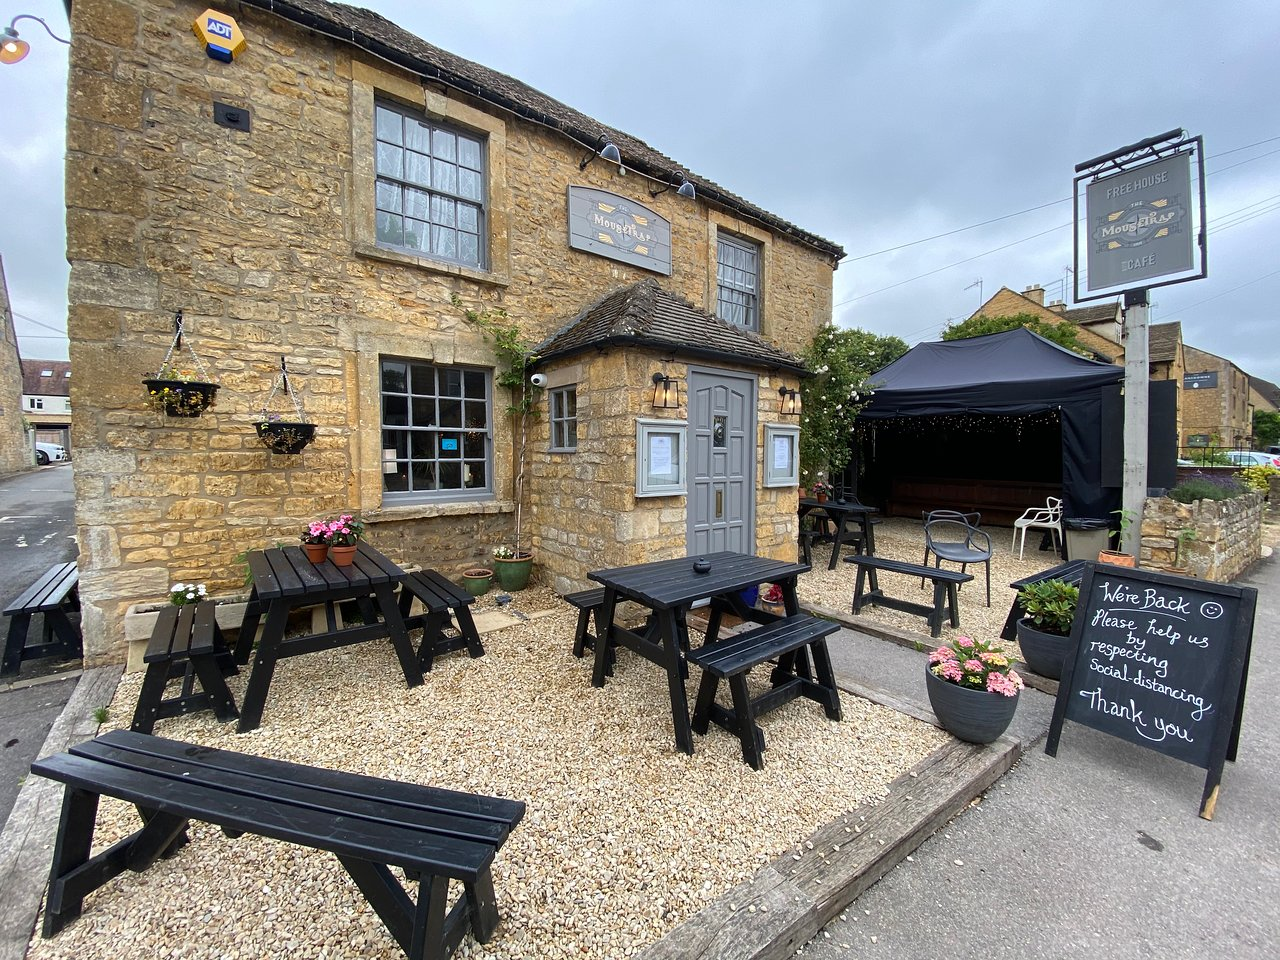 THE MOUSETRAP INN - Updated 2021 Prices, Reviews, and Photos ( Bourton-on-the-Water) - Tripadvisor